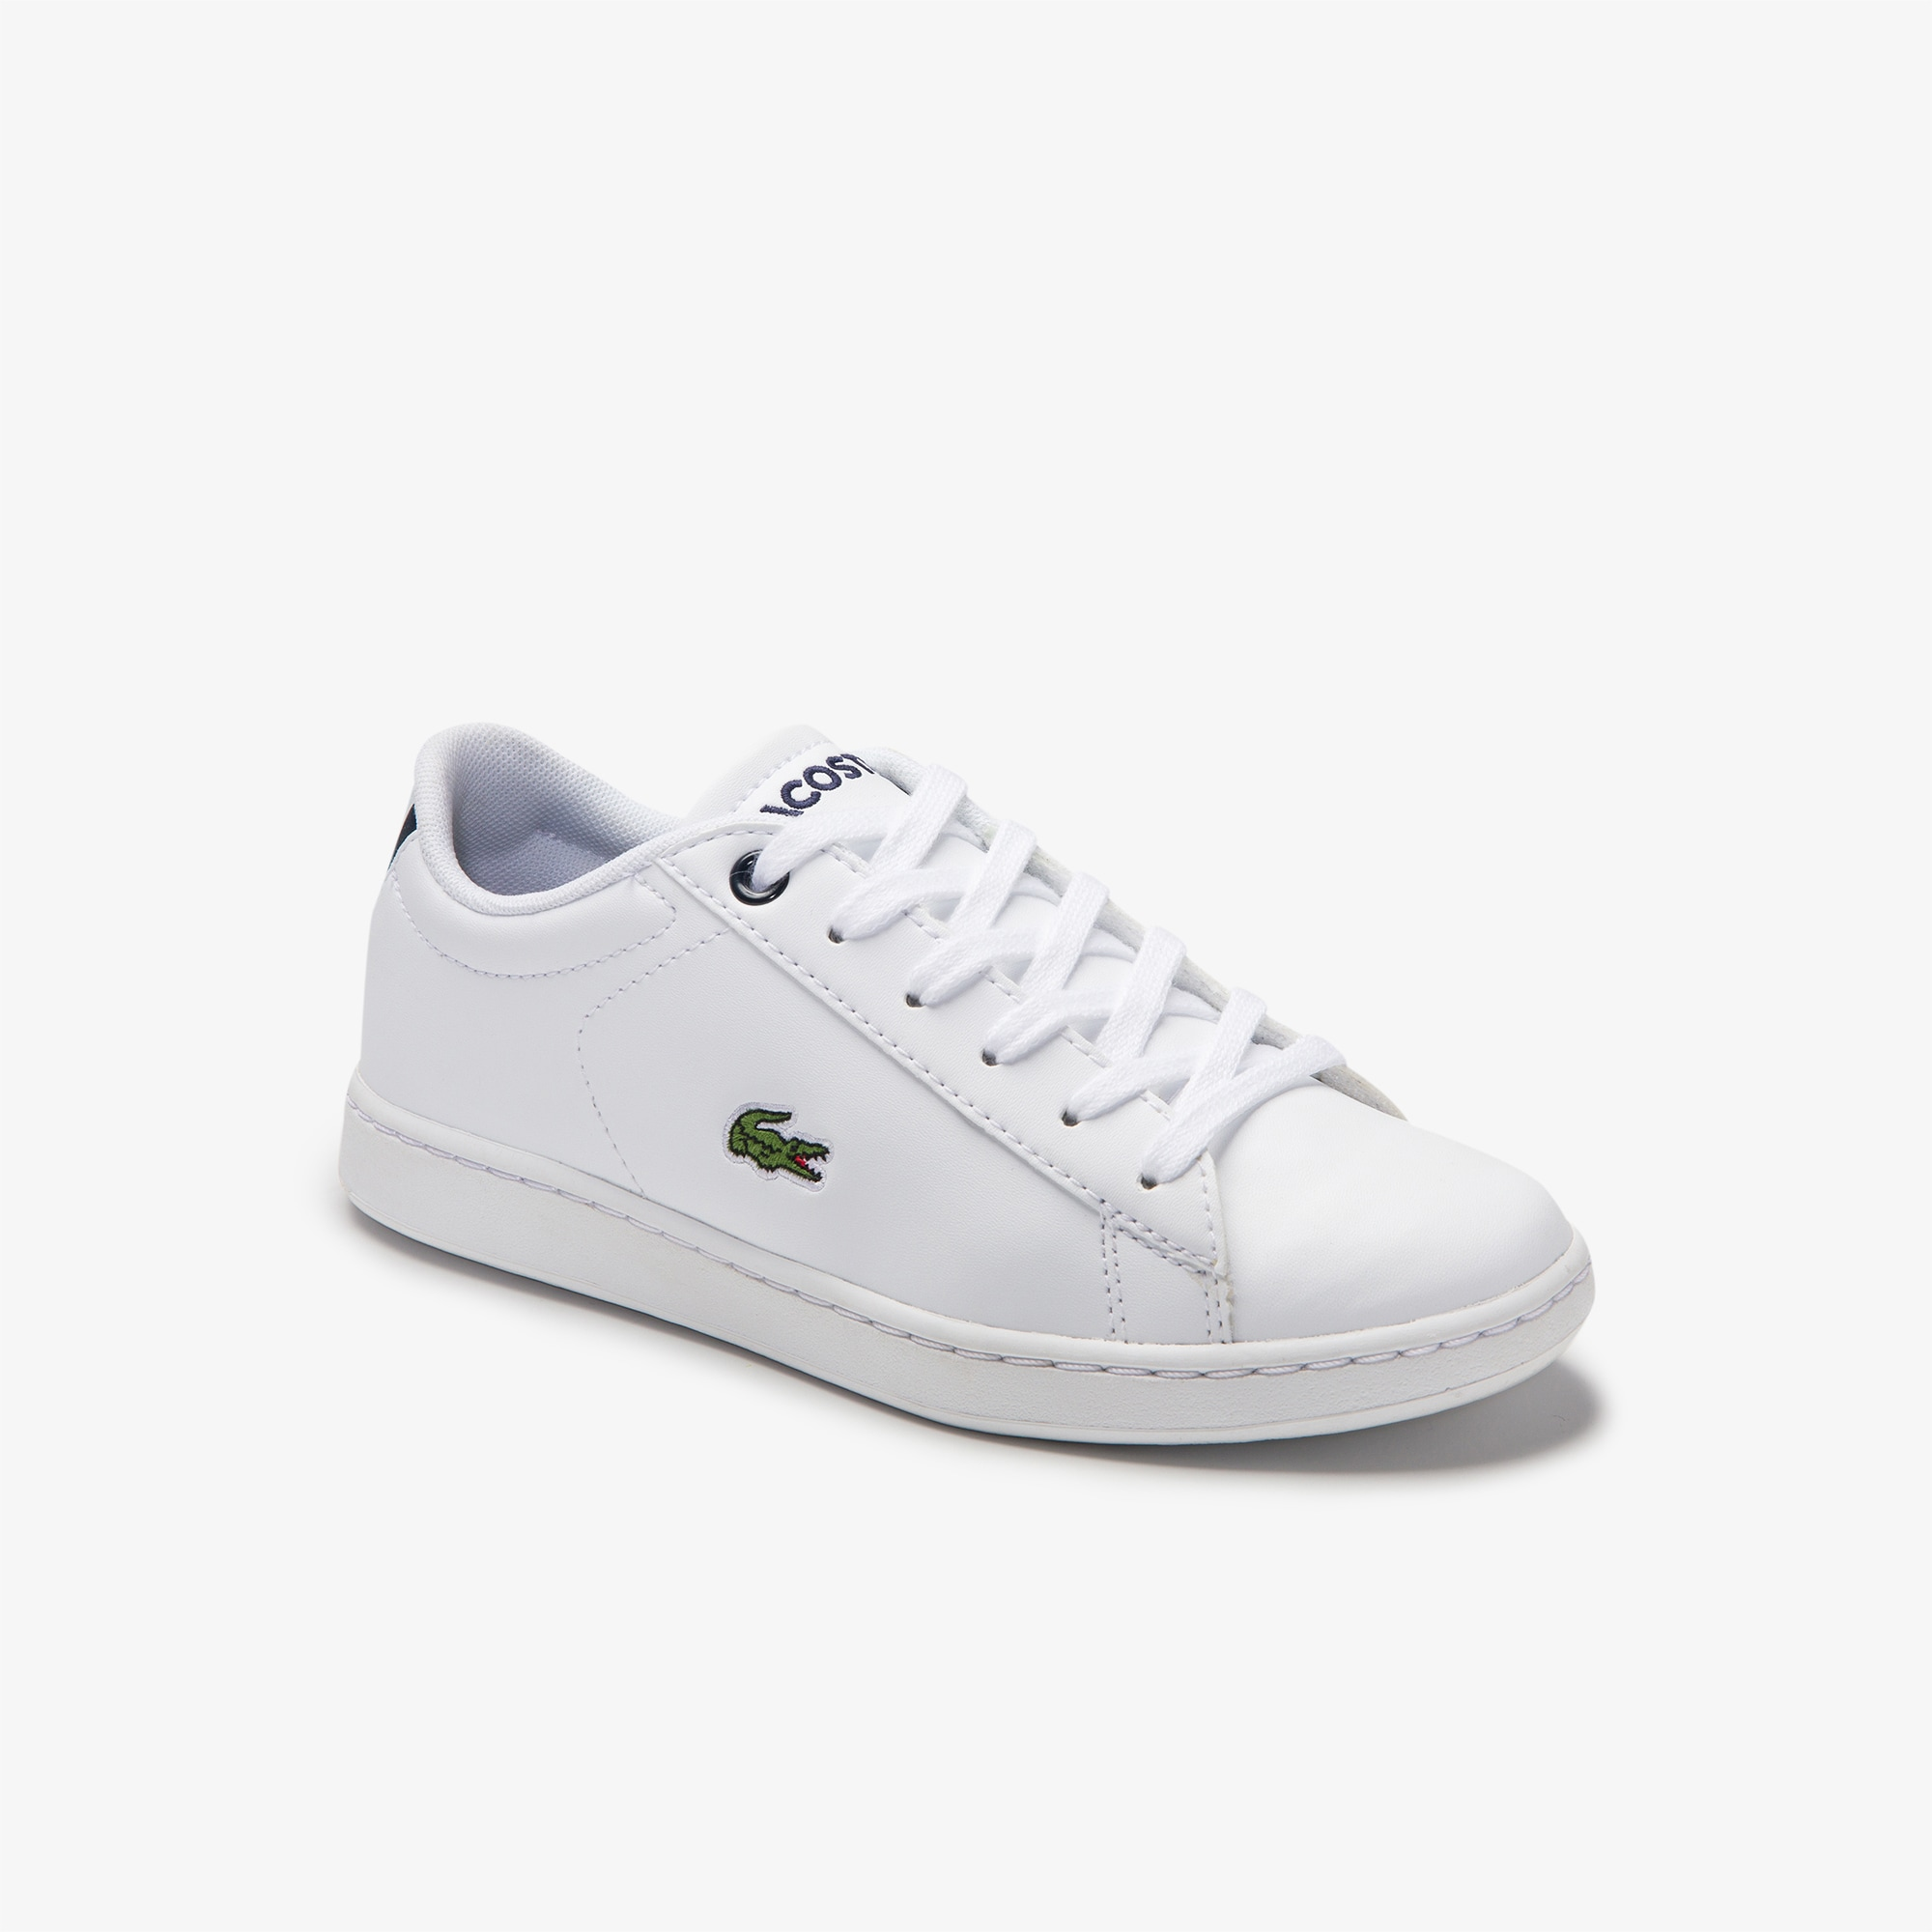 Childrens' Carnaby Evo Lace-Up Trainers